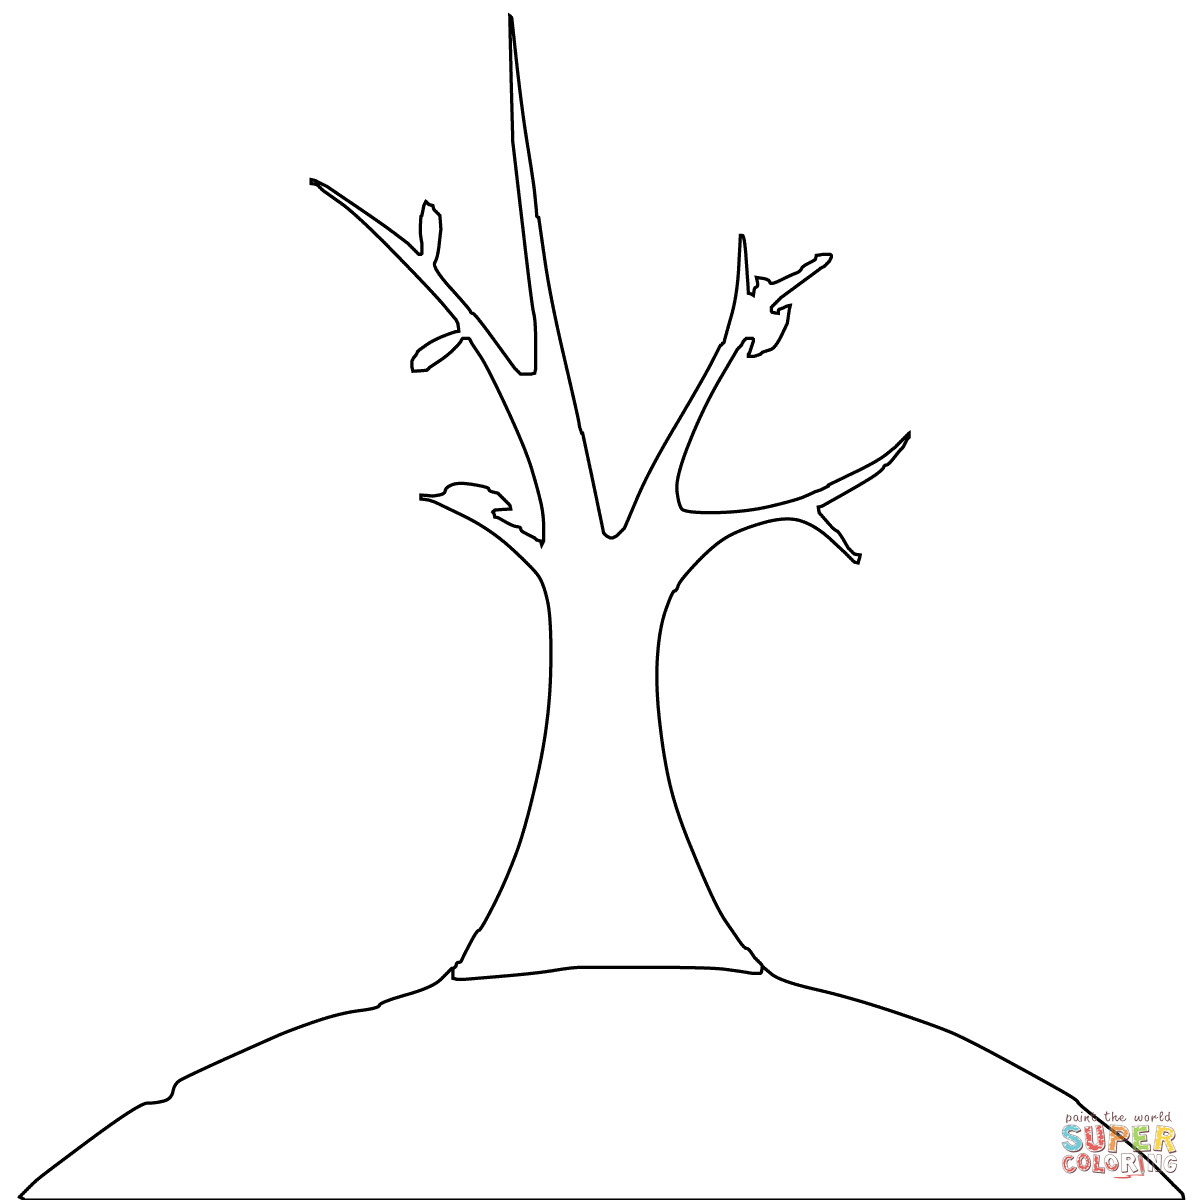 Bare Trees Coloring Pages | Free Printable Pictures - Coloring Home - Tree Coloring Pages Free Printable